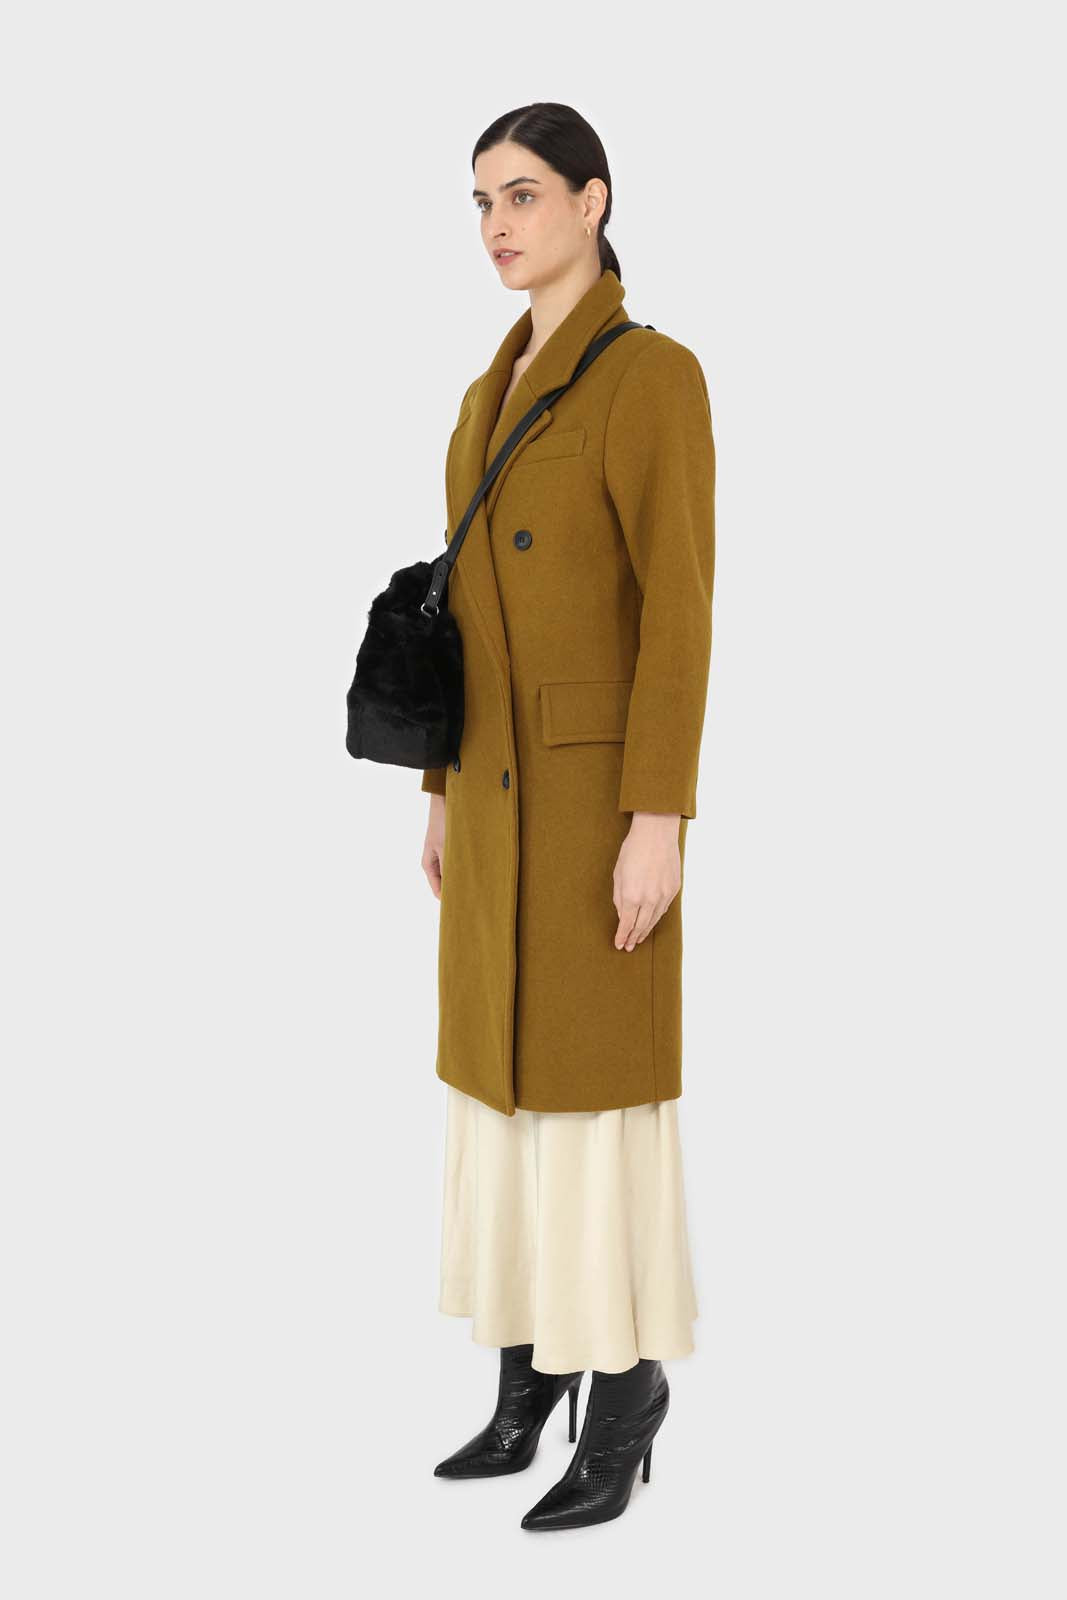 Mustard wool double breasted coat12